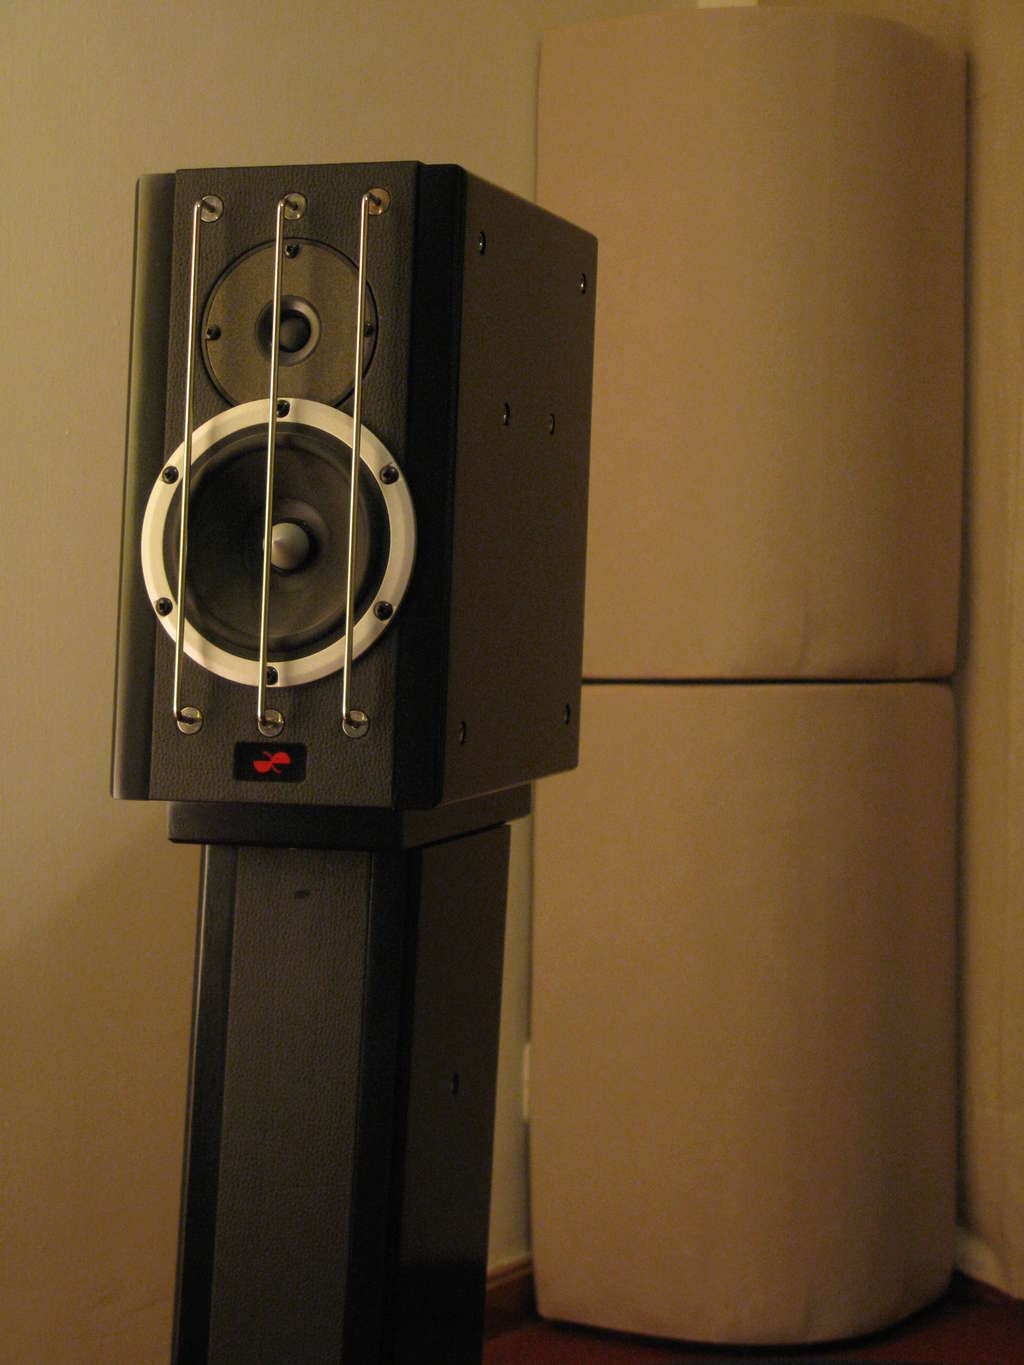 SALAS AUDIO PLANET Equipo13